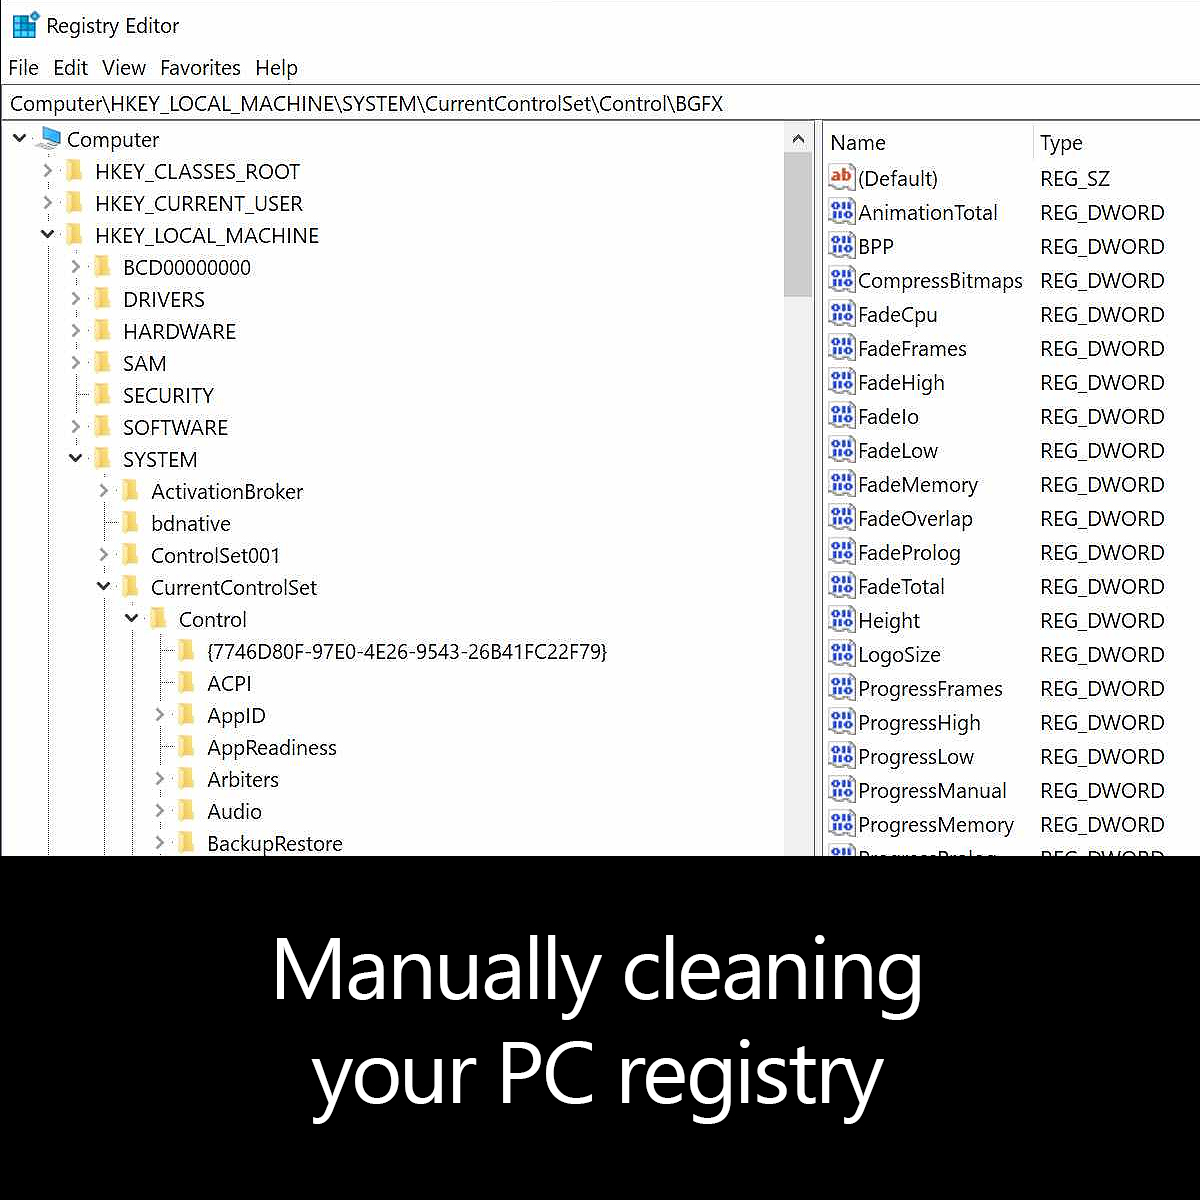 Manually cleaning your PC registry